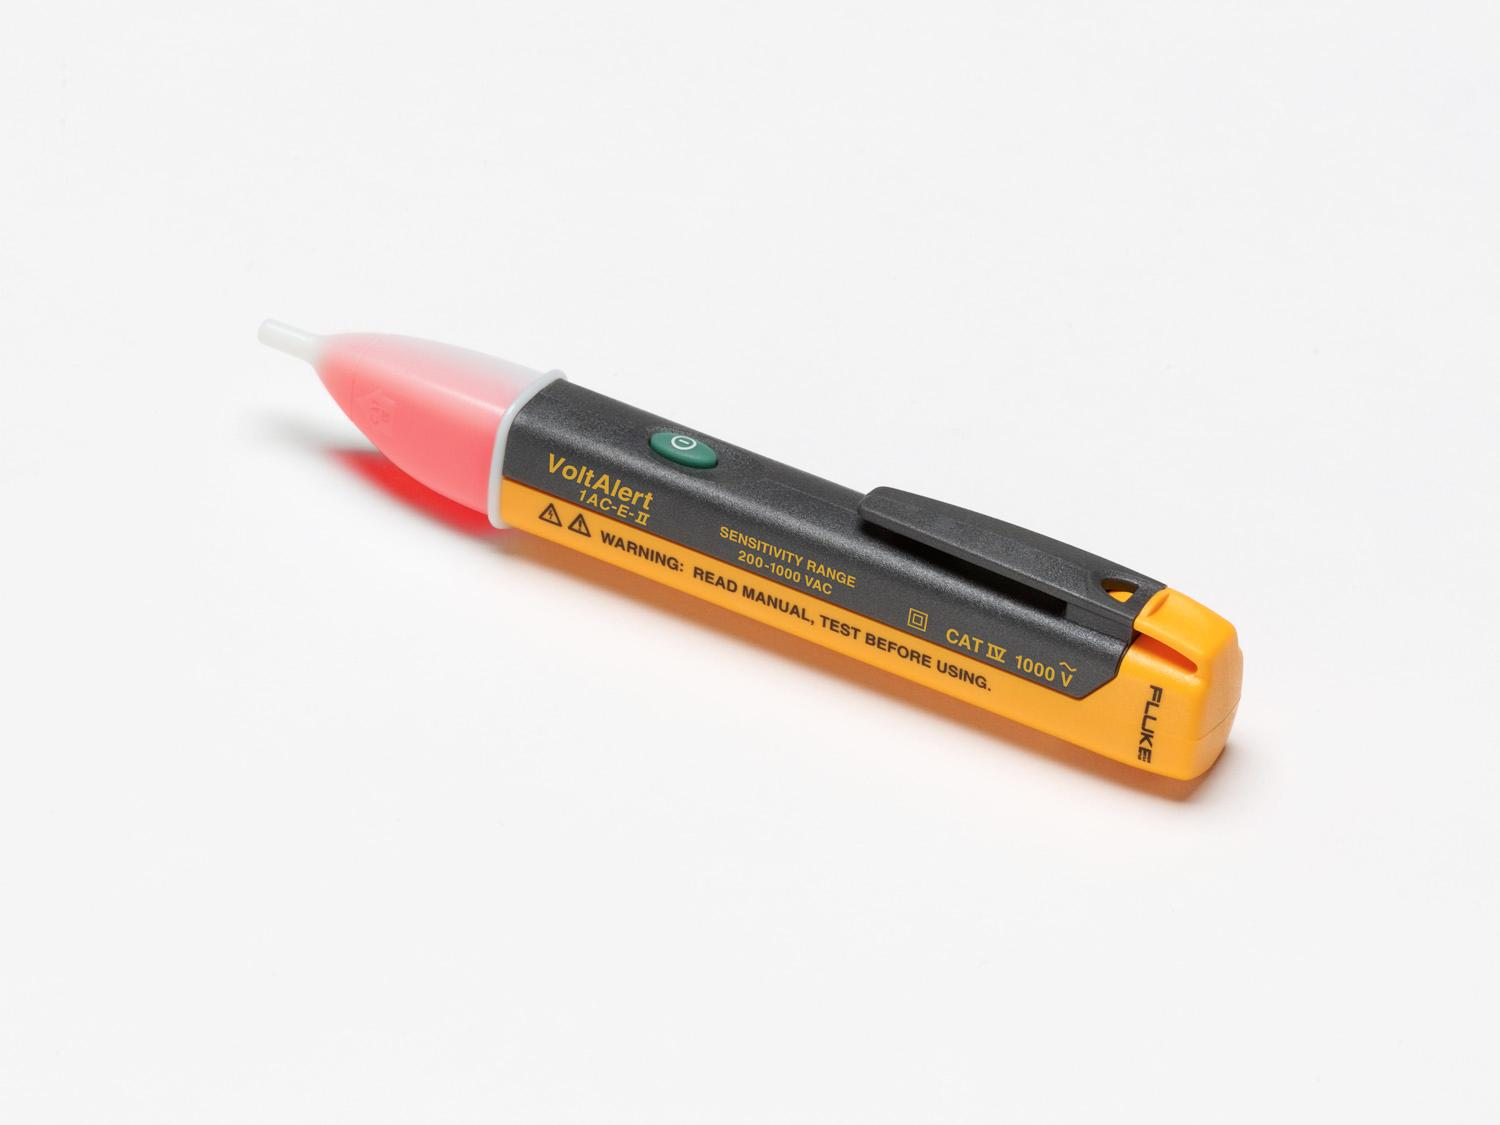 Fluke Voltage Detector : Fluke ac a ii voltalert non contact voltage tester